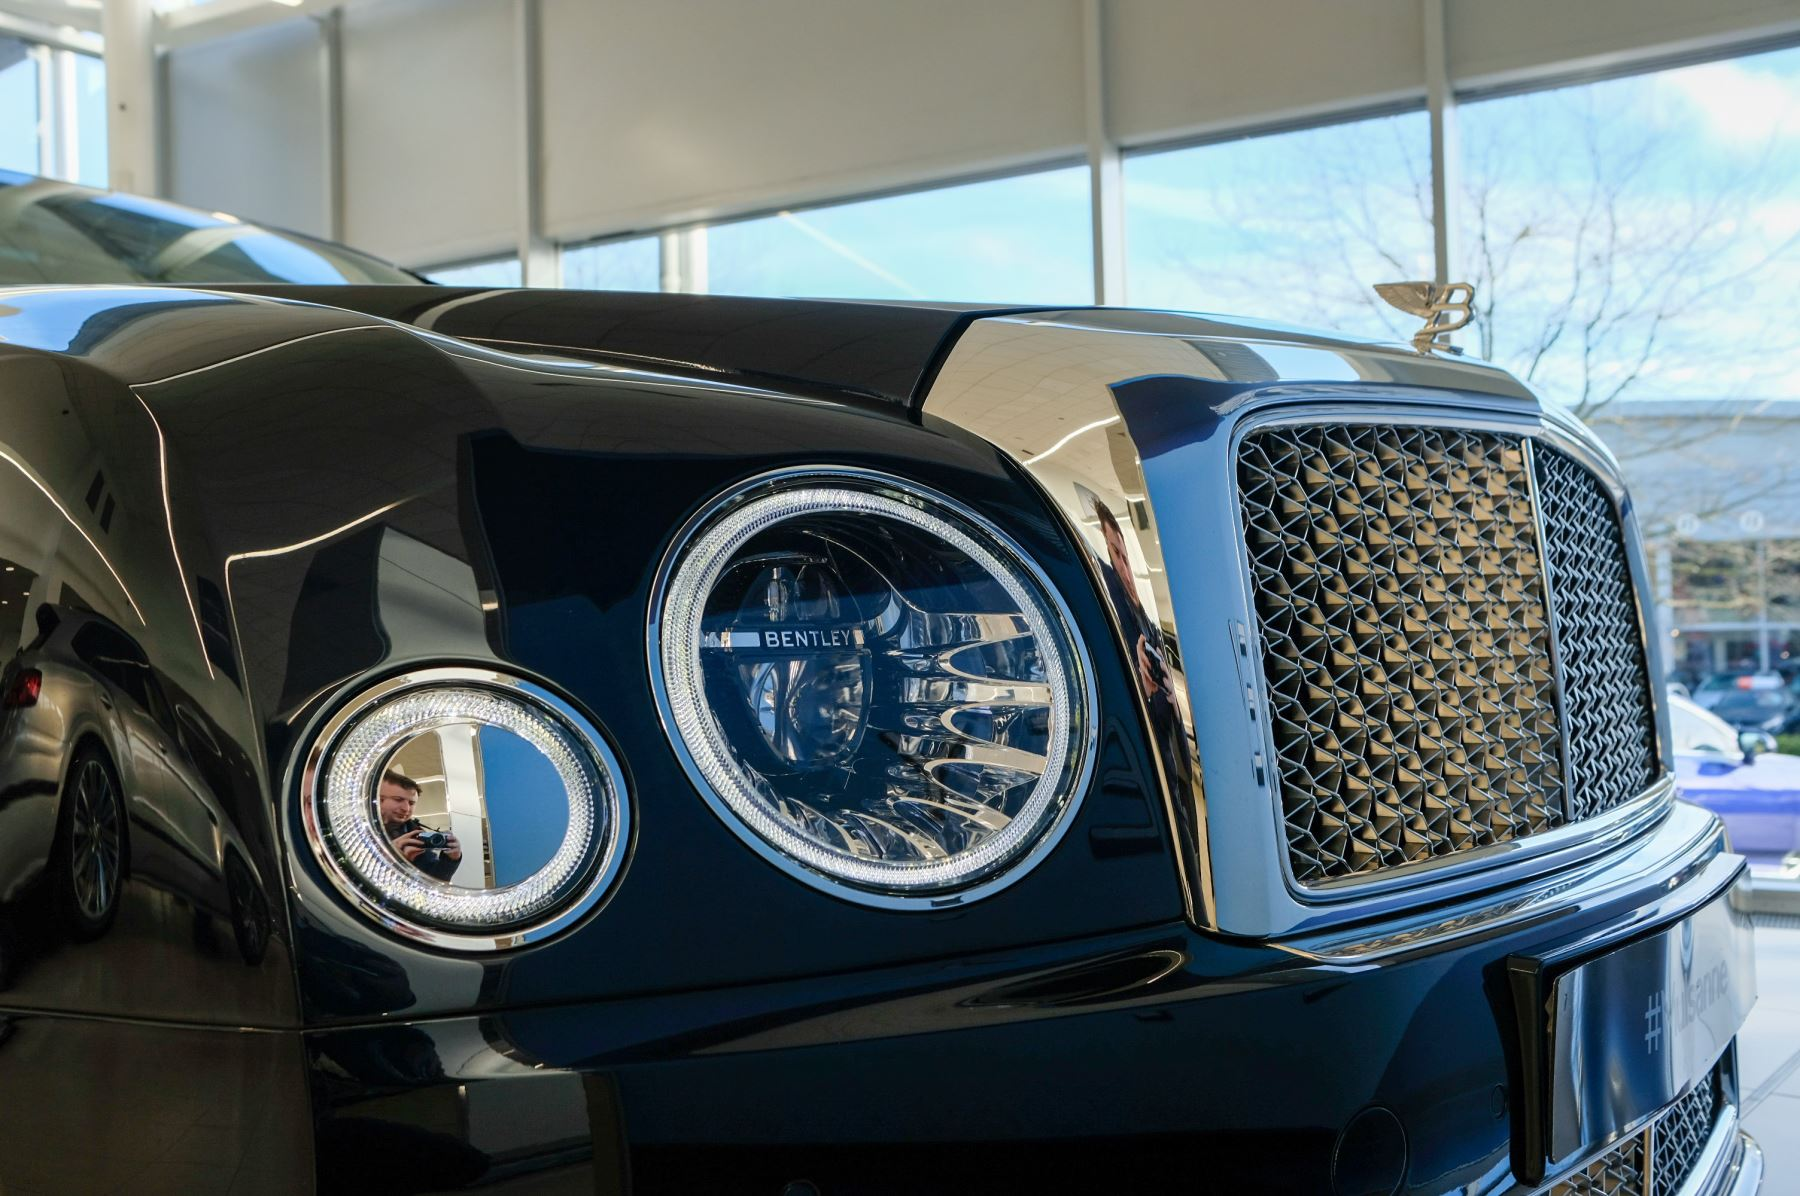 Bentley Mulsanne Speed 6.8 V8 Speed - Speed Premier, Entertainment and Comfort Specification image 5